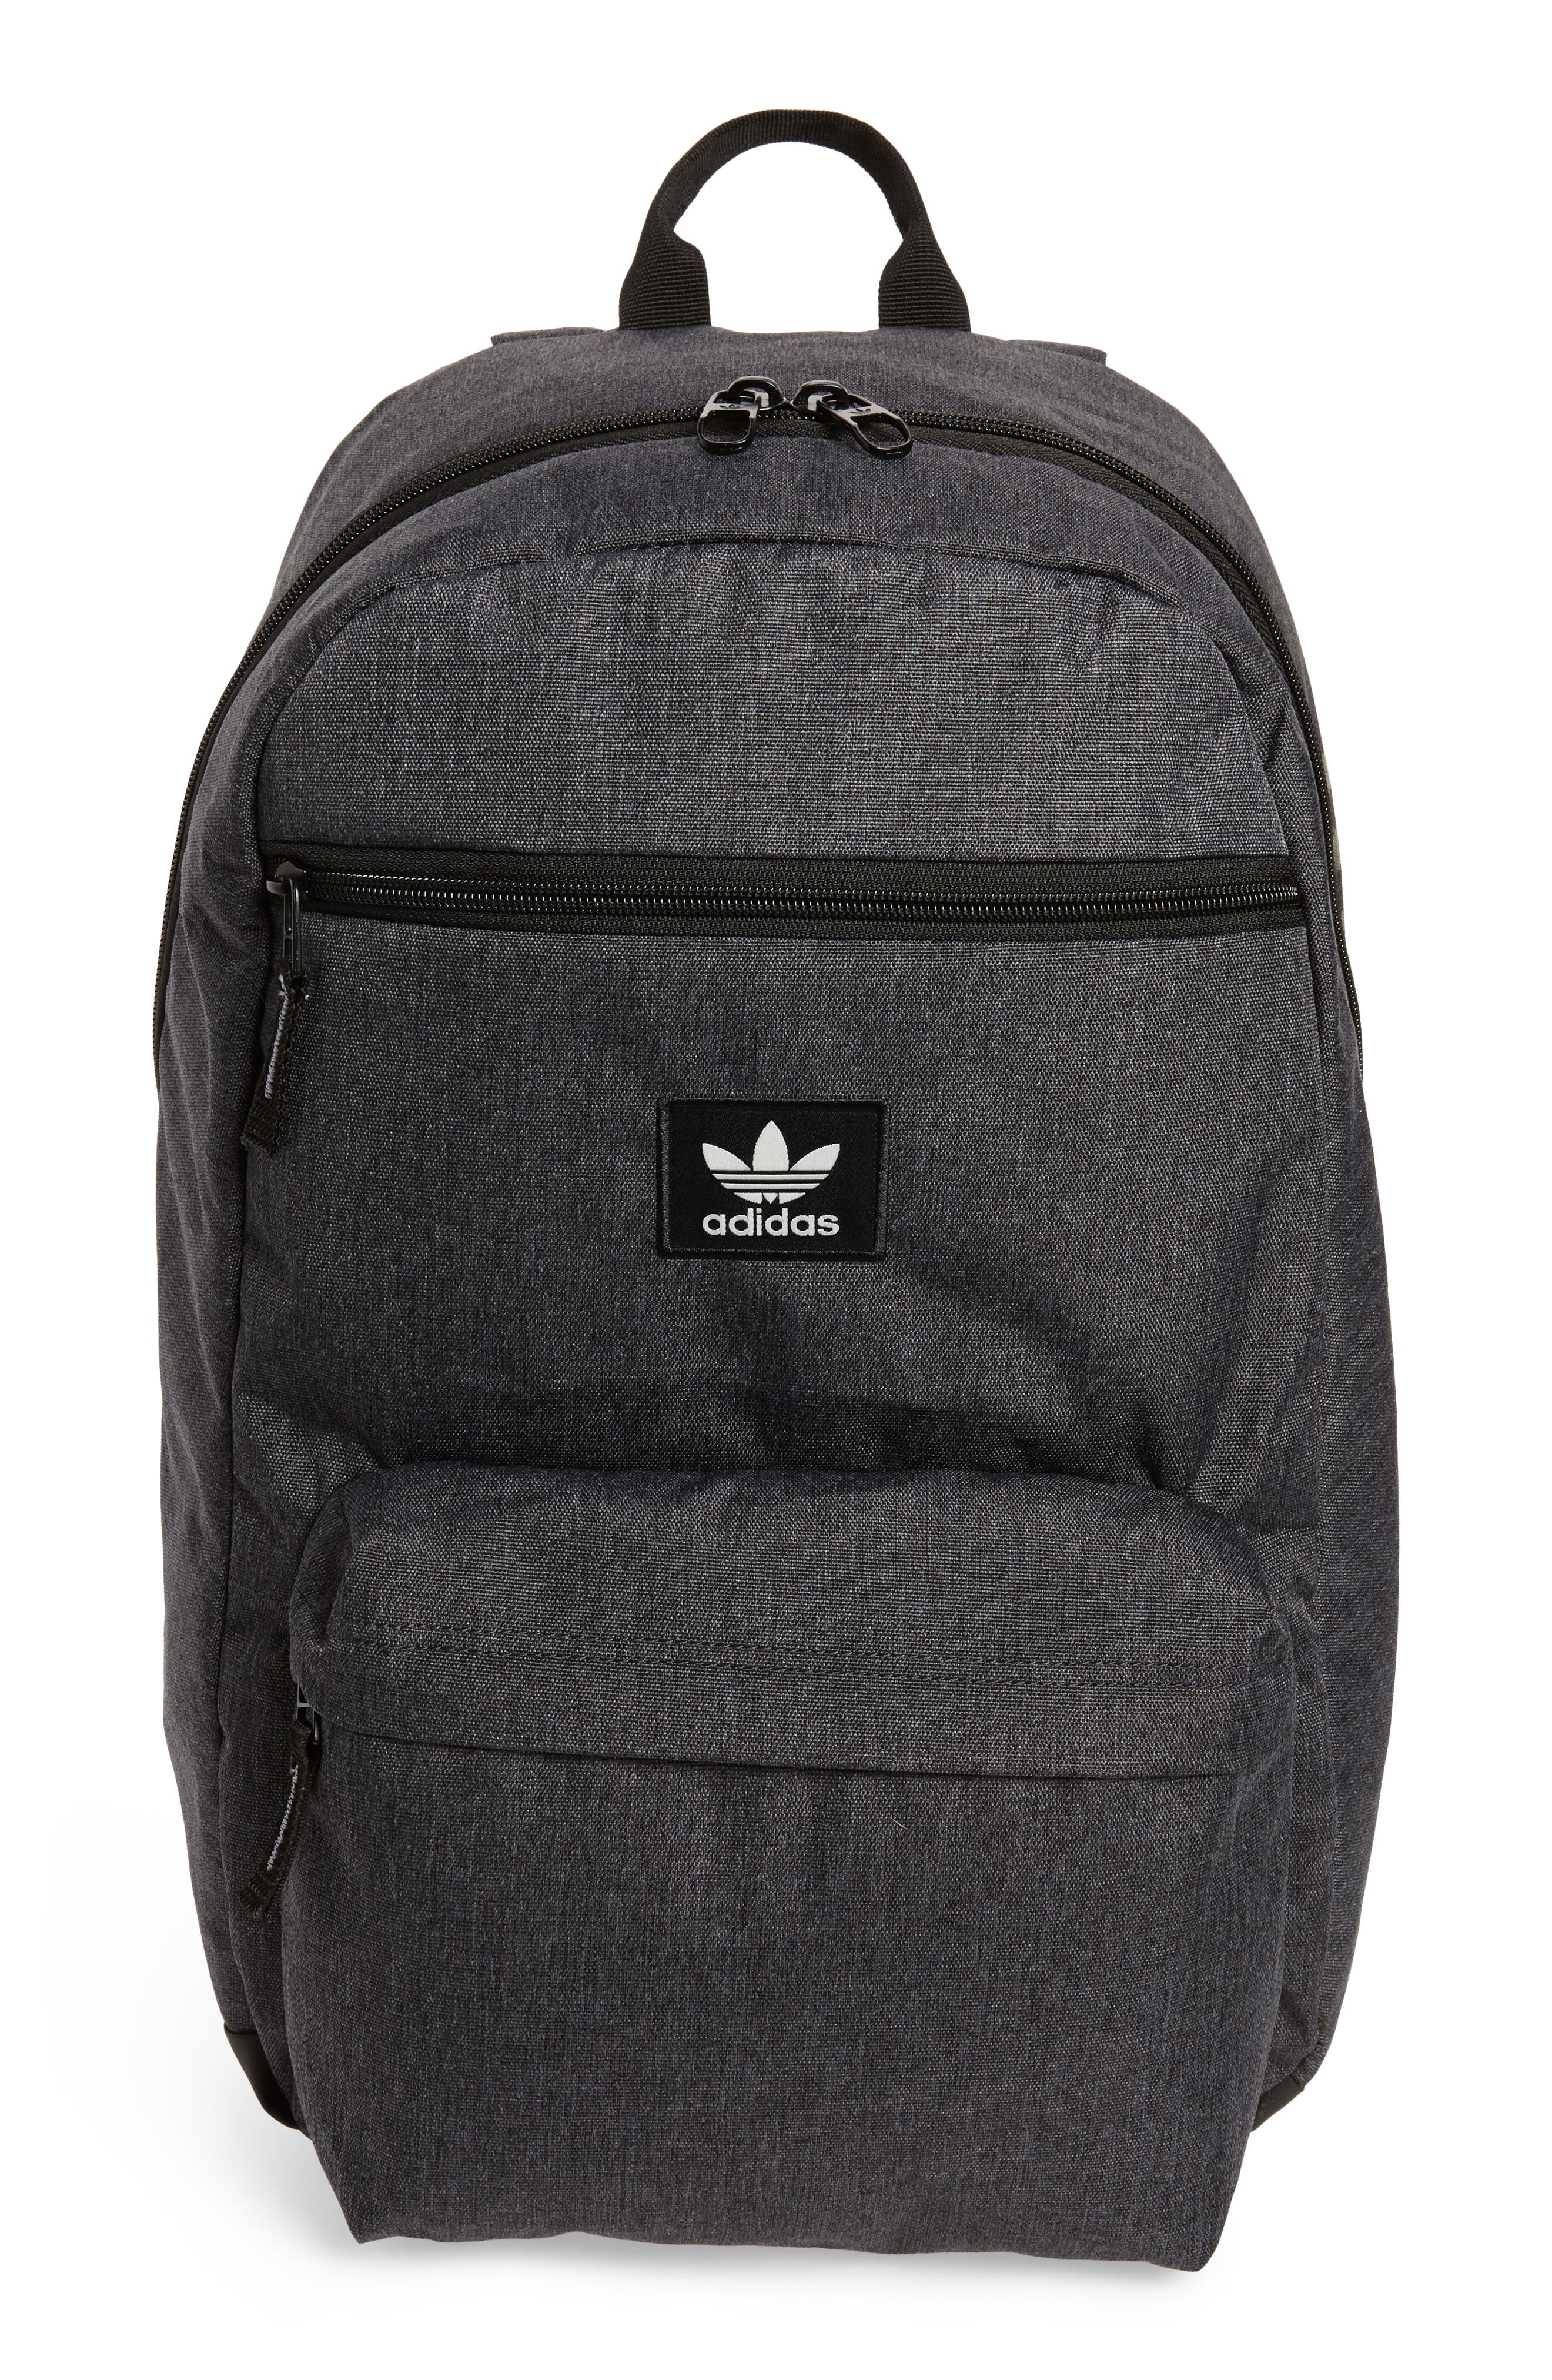 National Plus Backpack,                             Main thumbnail 1, color,                             BLACK/ GREY HEATHER/ WHITE